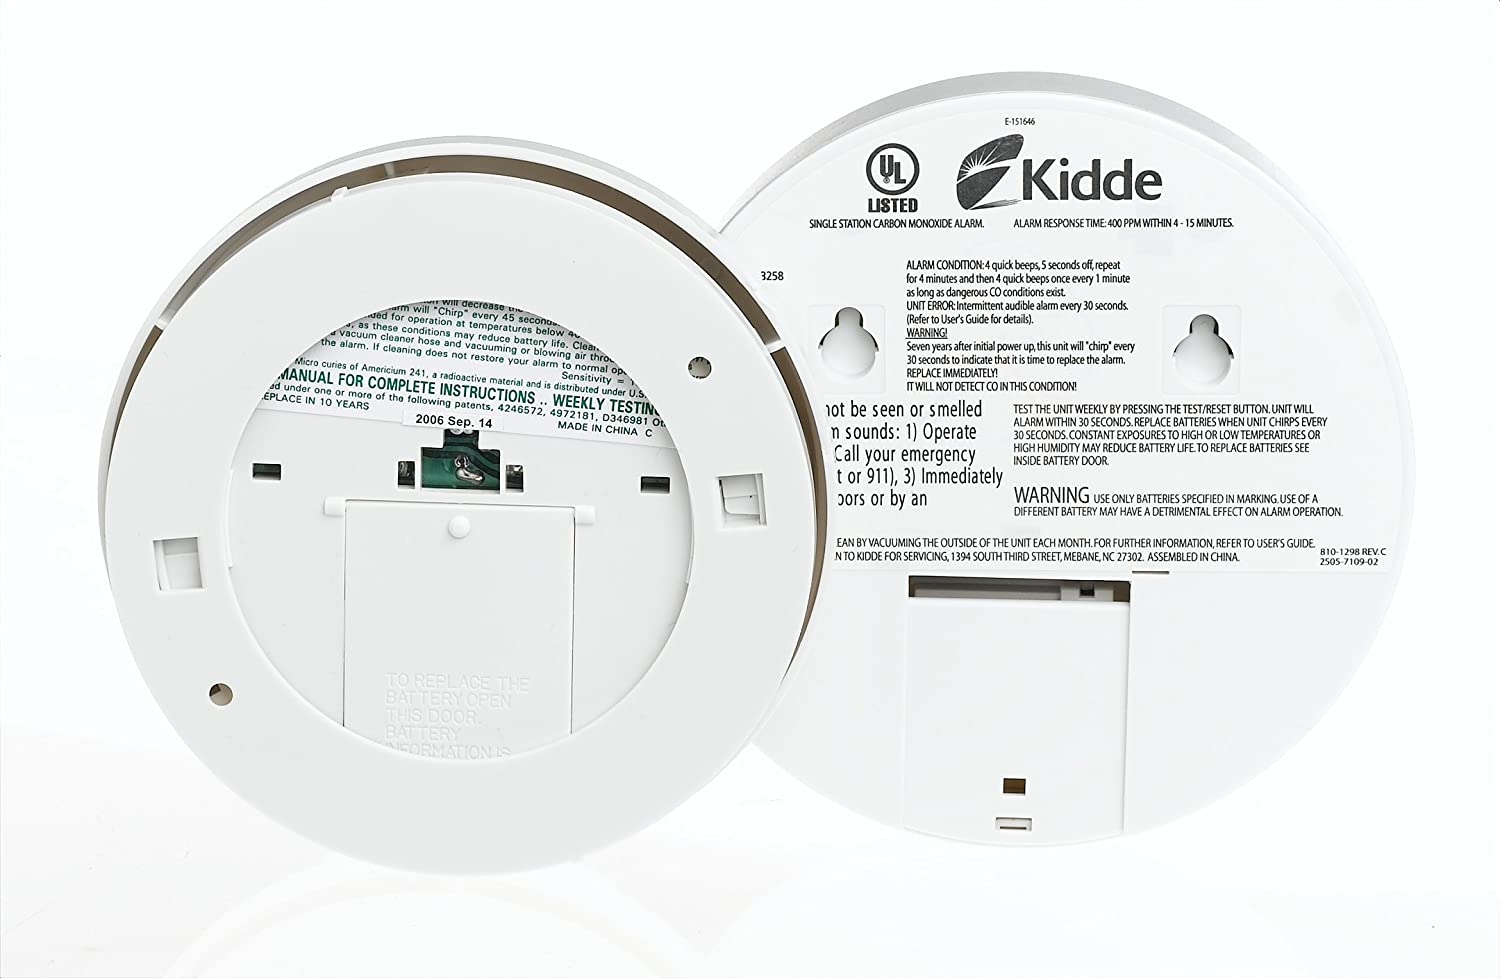 kidde carbon monoxide kn cob b and smoke alarm 0916 value pack rh amazon com BRK Electronics Smoke Alarm Manual Smoke Alarm Firex 1020 Manual